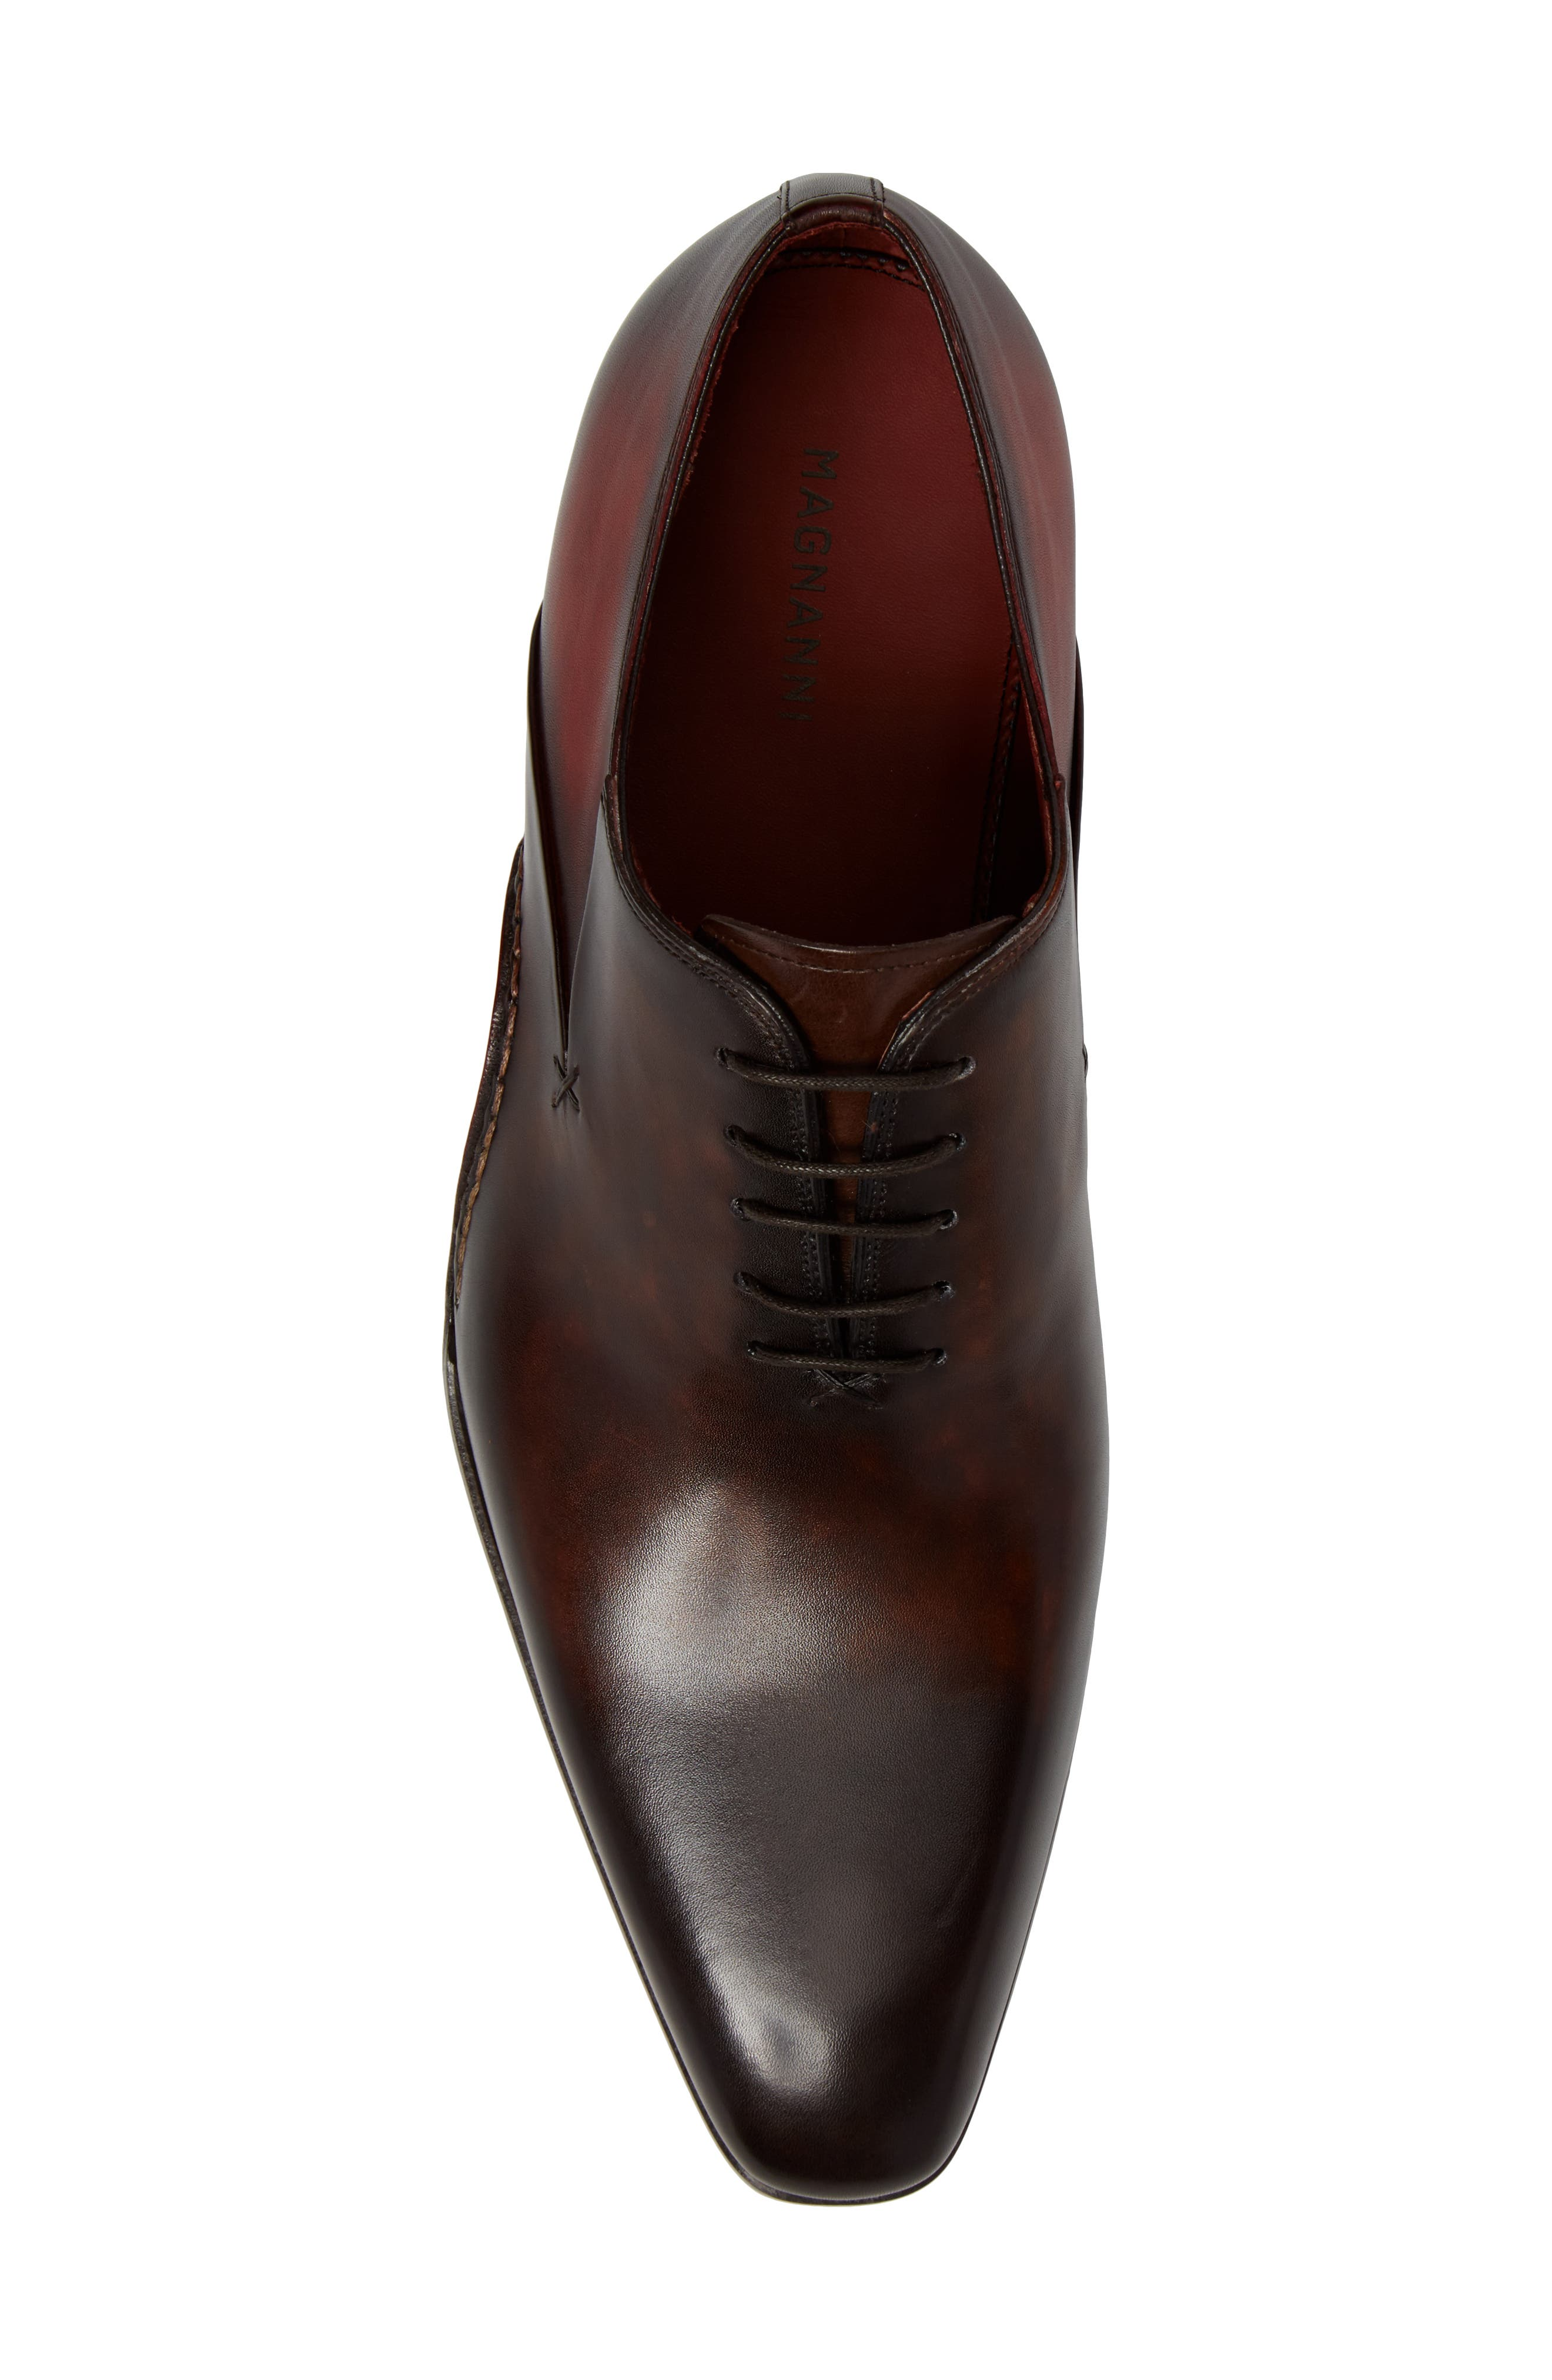 MAGNANNI, Cantabria Plain Toe Oxford, Alternate thumbnail 5, color, BROWN/ RED LEATHER